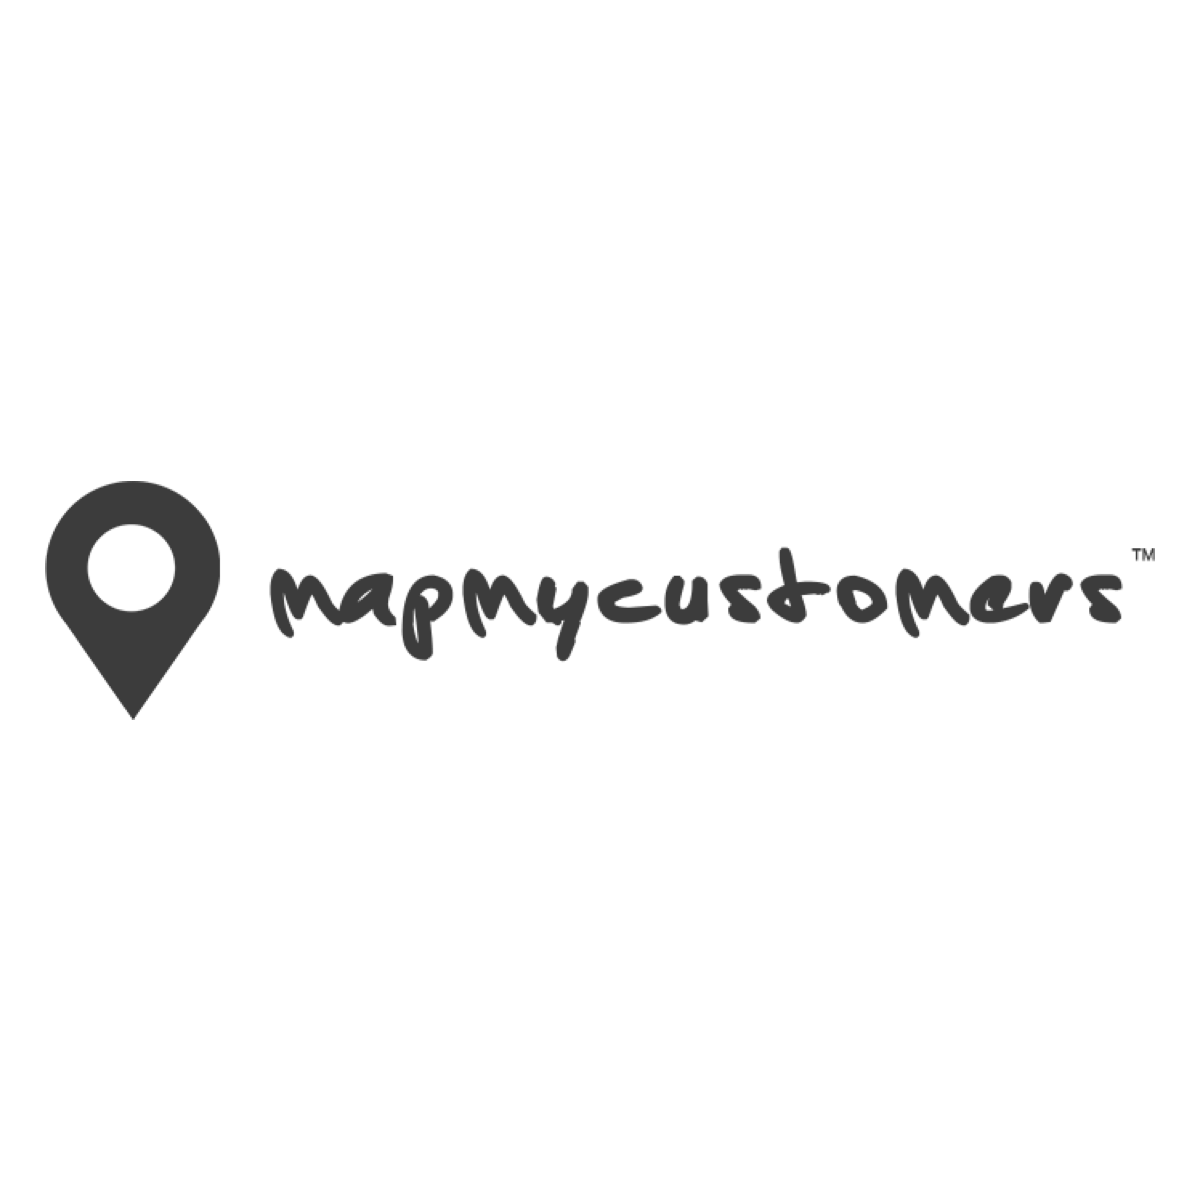 Map My Customers | HubSpot App Marketplace Map My on co map, tv map, can map, first map, get map, oh map, gw map, heart map, future earth changes map, wo map, personal systems map, find map, would map, ai map, art that is a map, it's map, nz map, india map, no map, bing map,